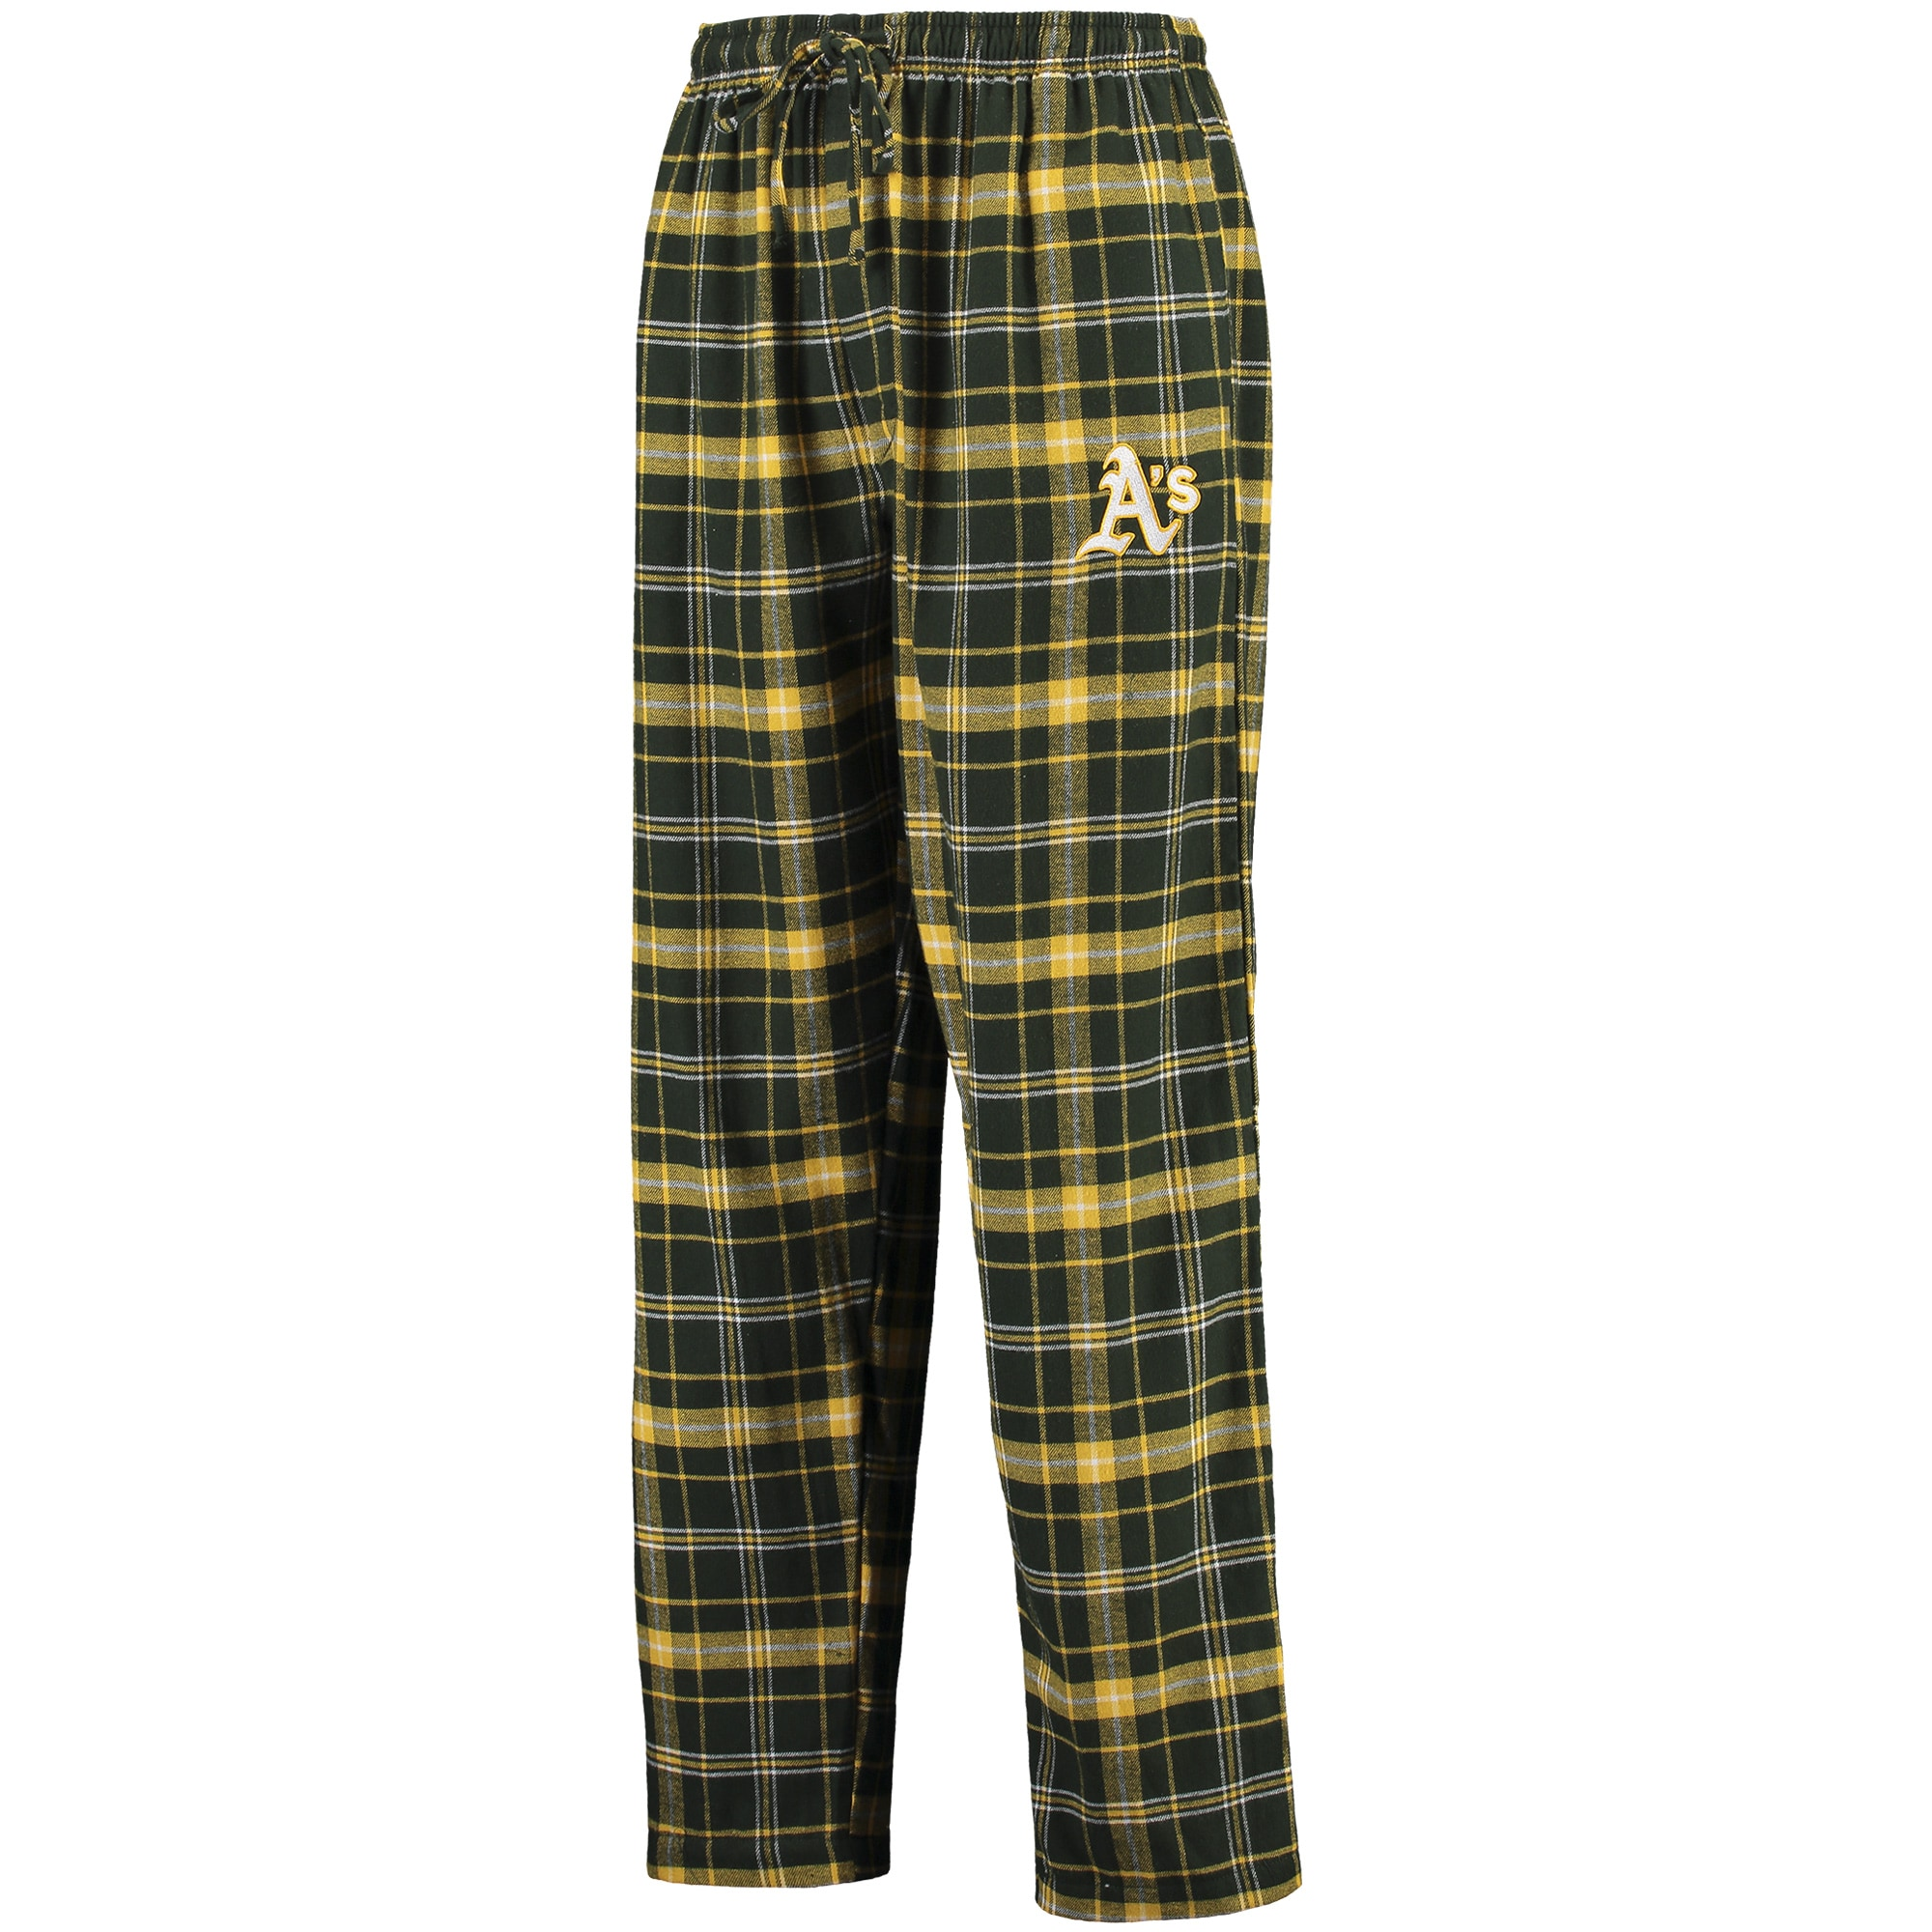 Oakland Athletics Concepts Sport Ultimate Plaid Flannel Pants - Green/Gold